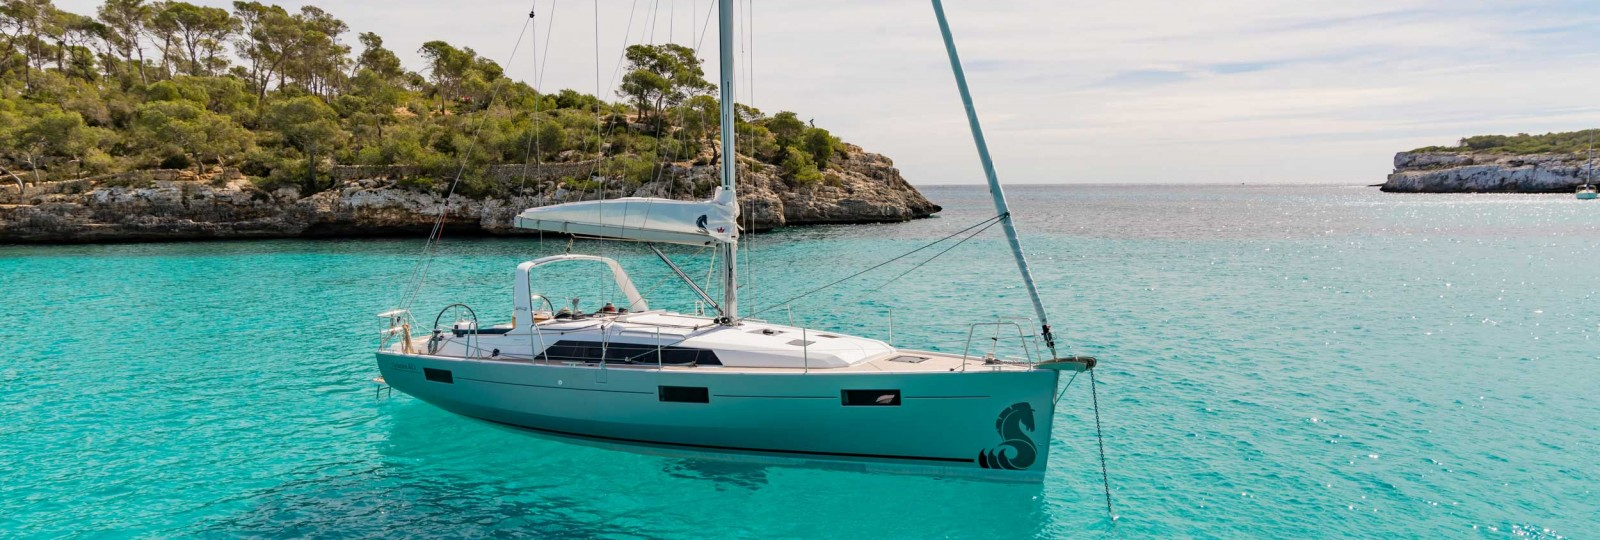 Beneteau Oceanis 41.1 at anchor